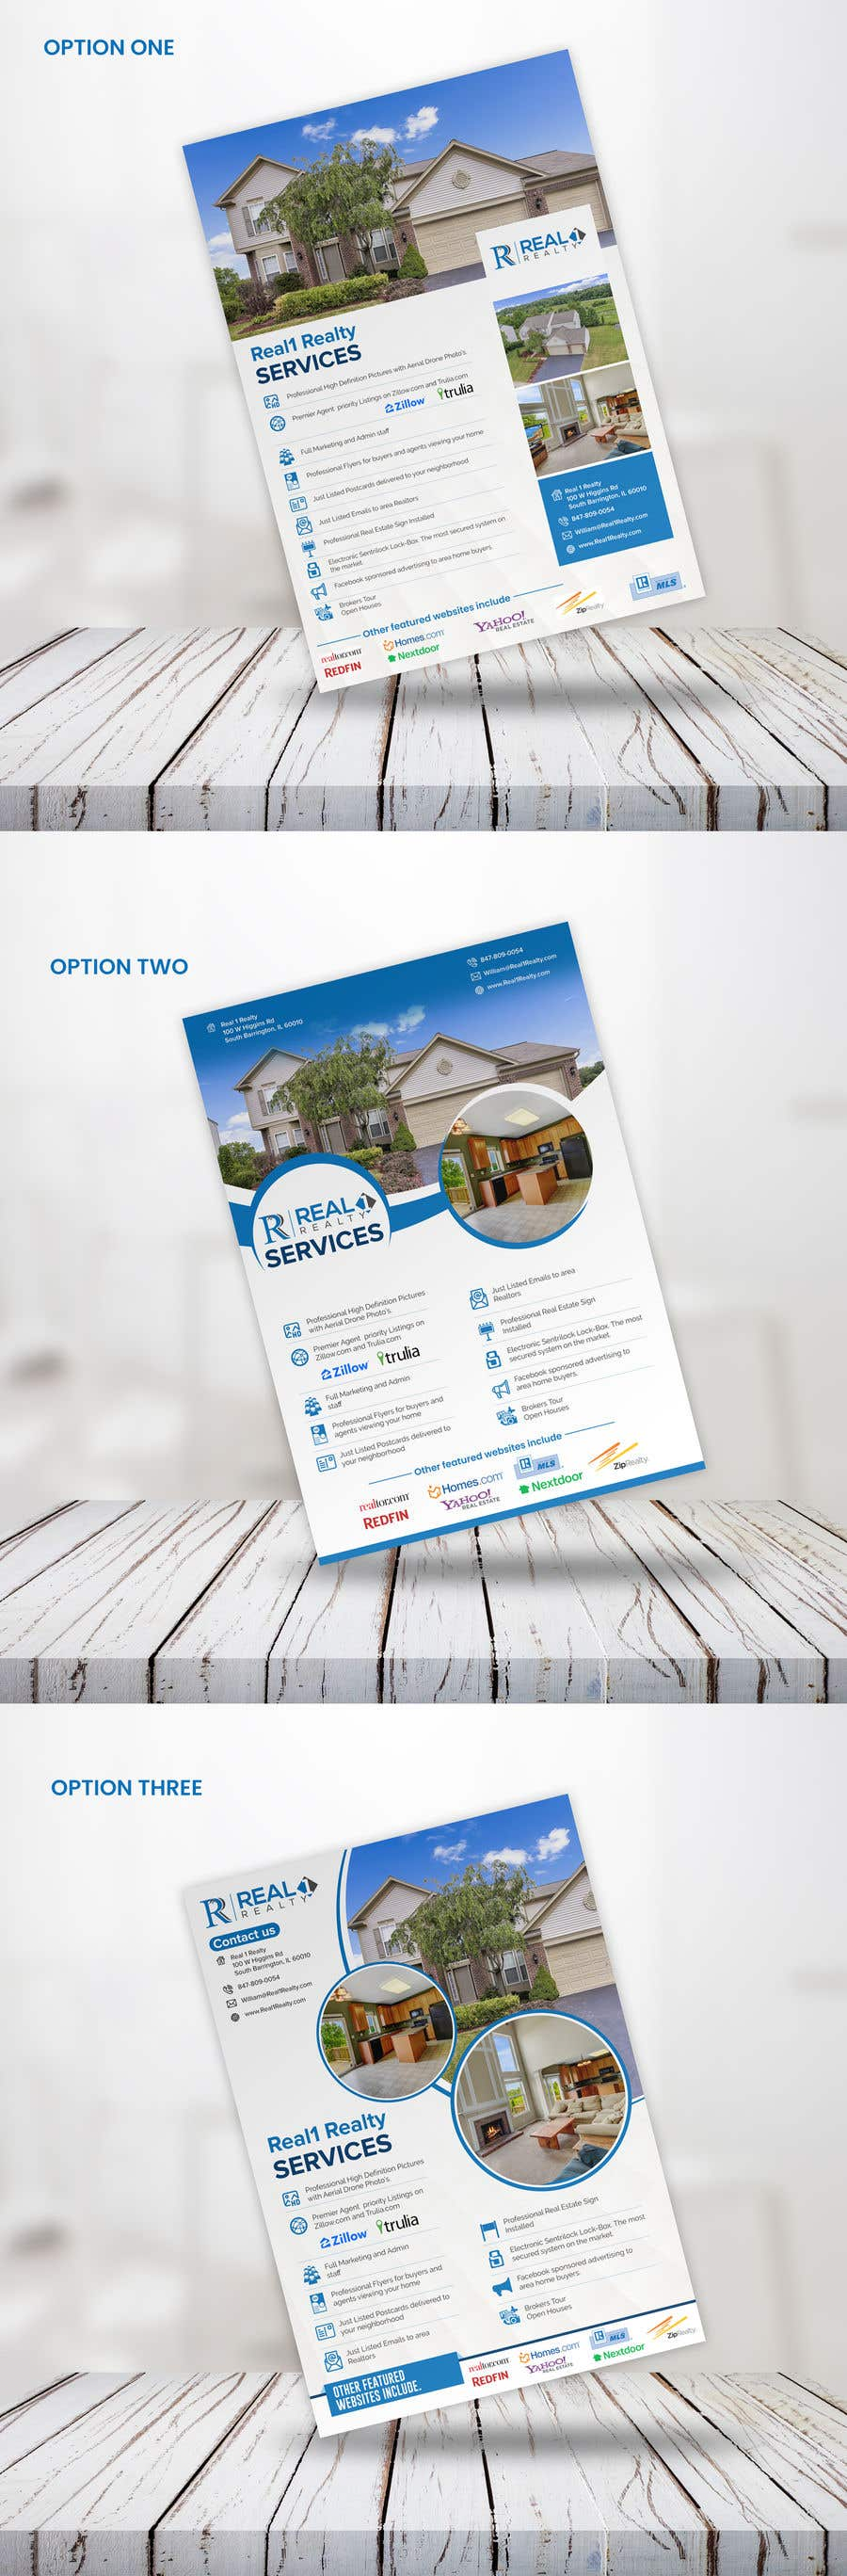 Bài tham dự cuộc thi #94 cho Custom one page Professional Brochure for Real Estate Company